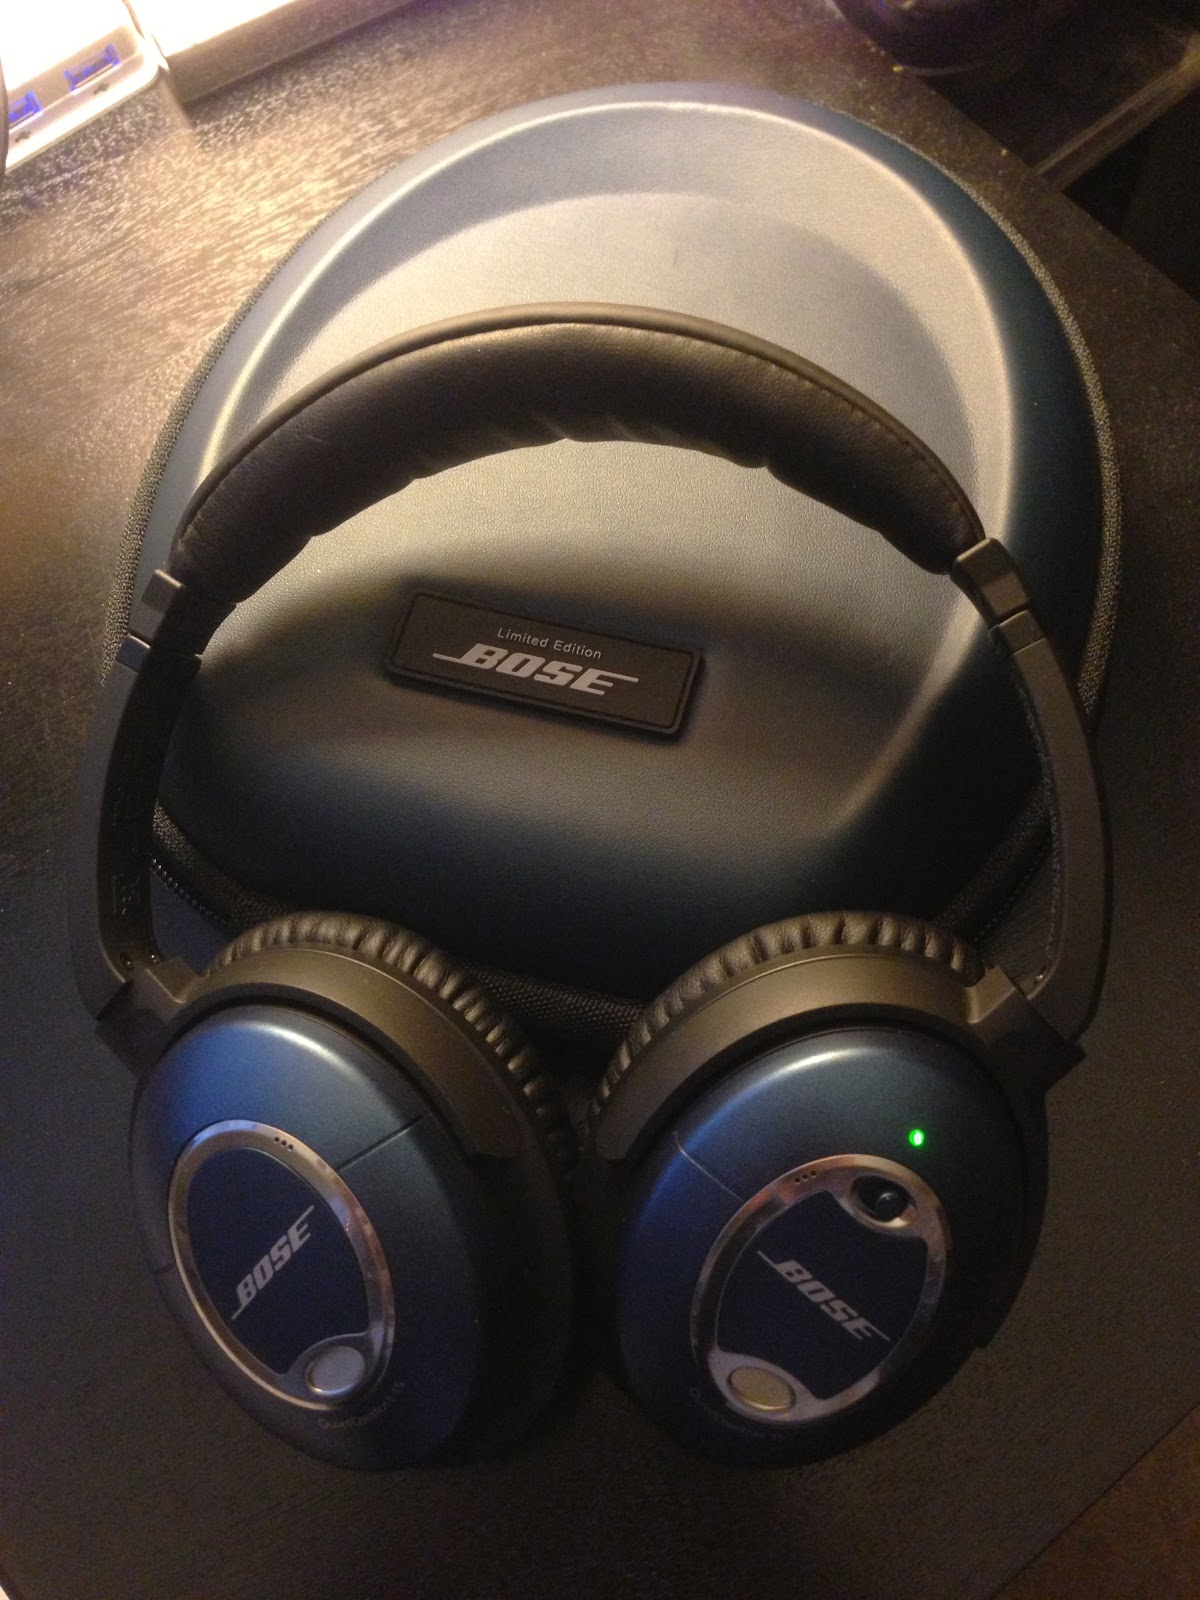 bose noise cancelling headphones case. the limited edition has a blue leather case. bose noise cancelling headphones case r